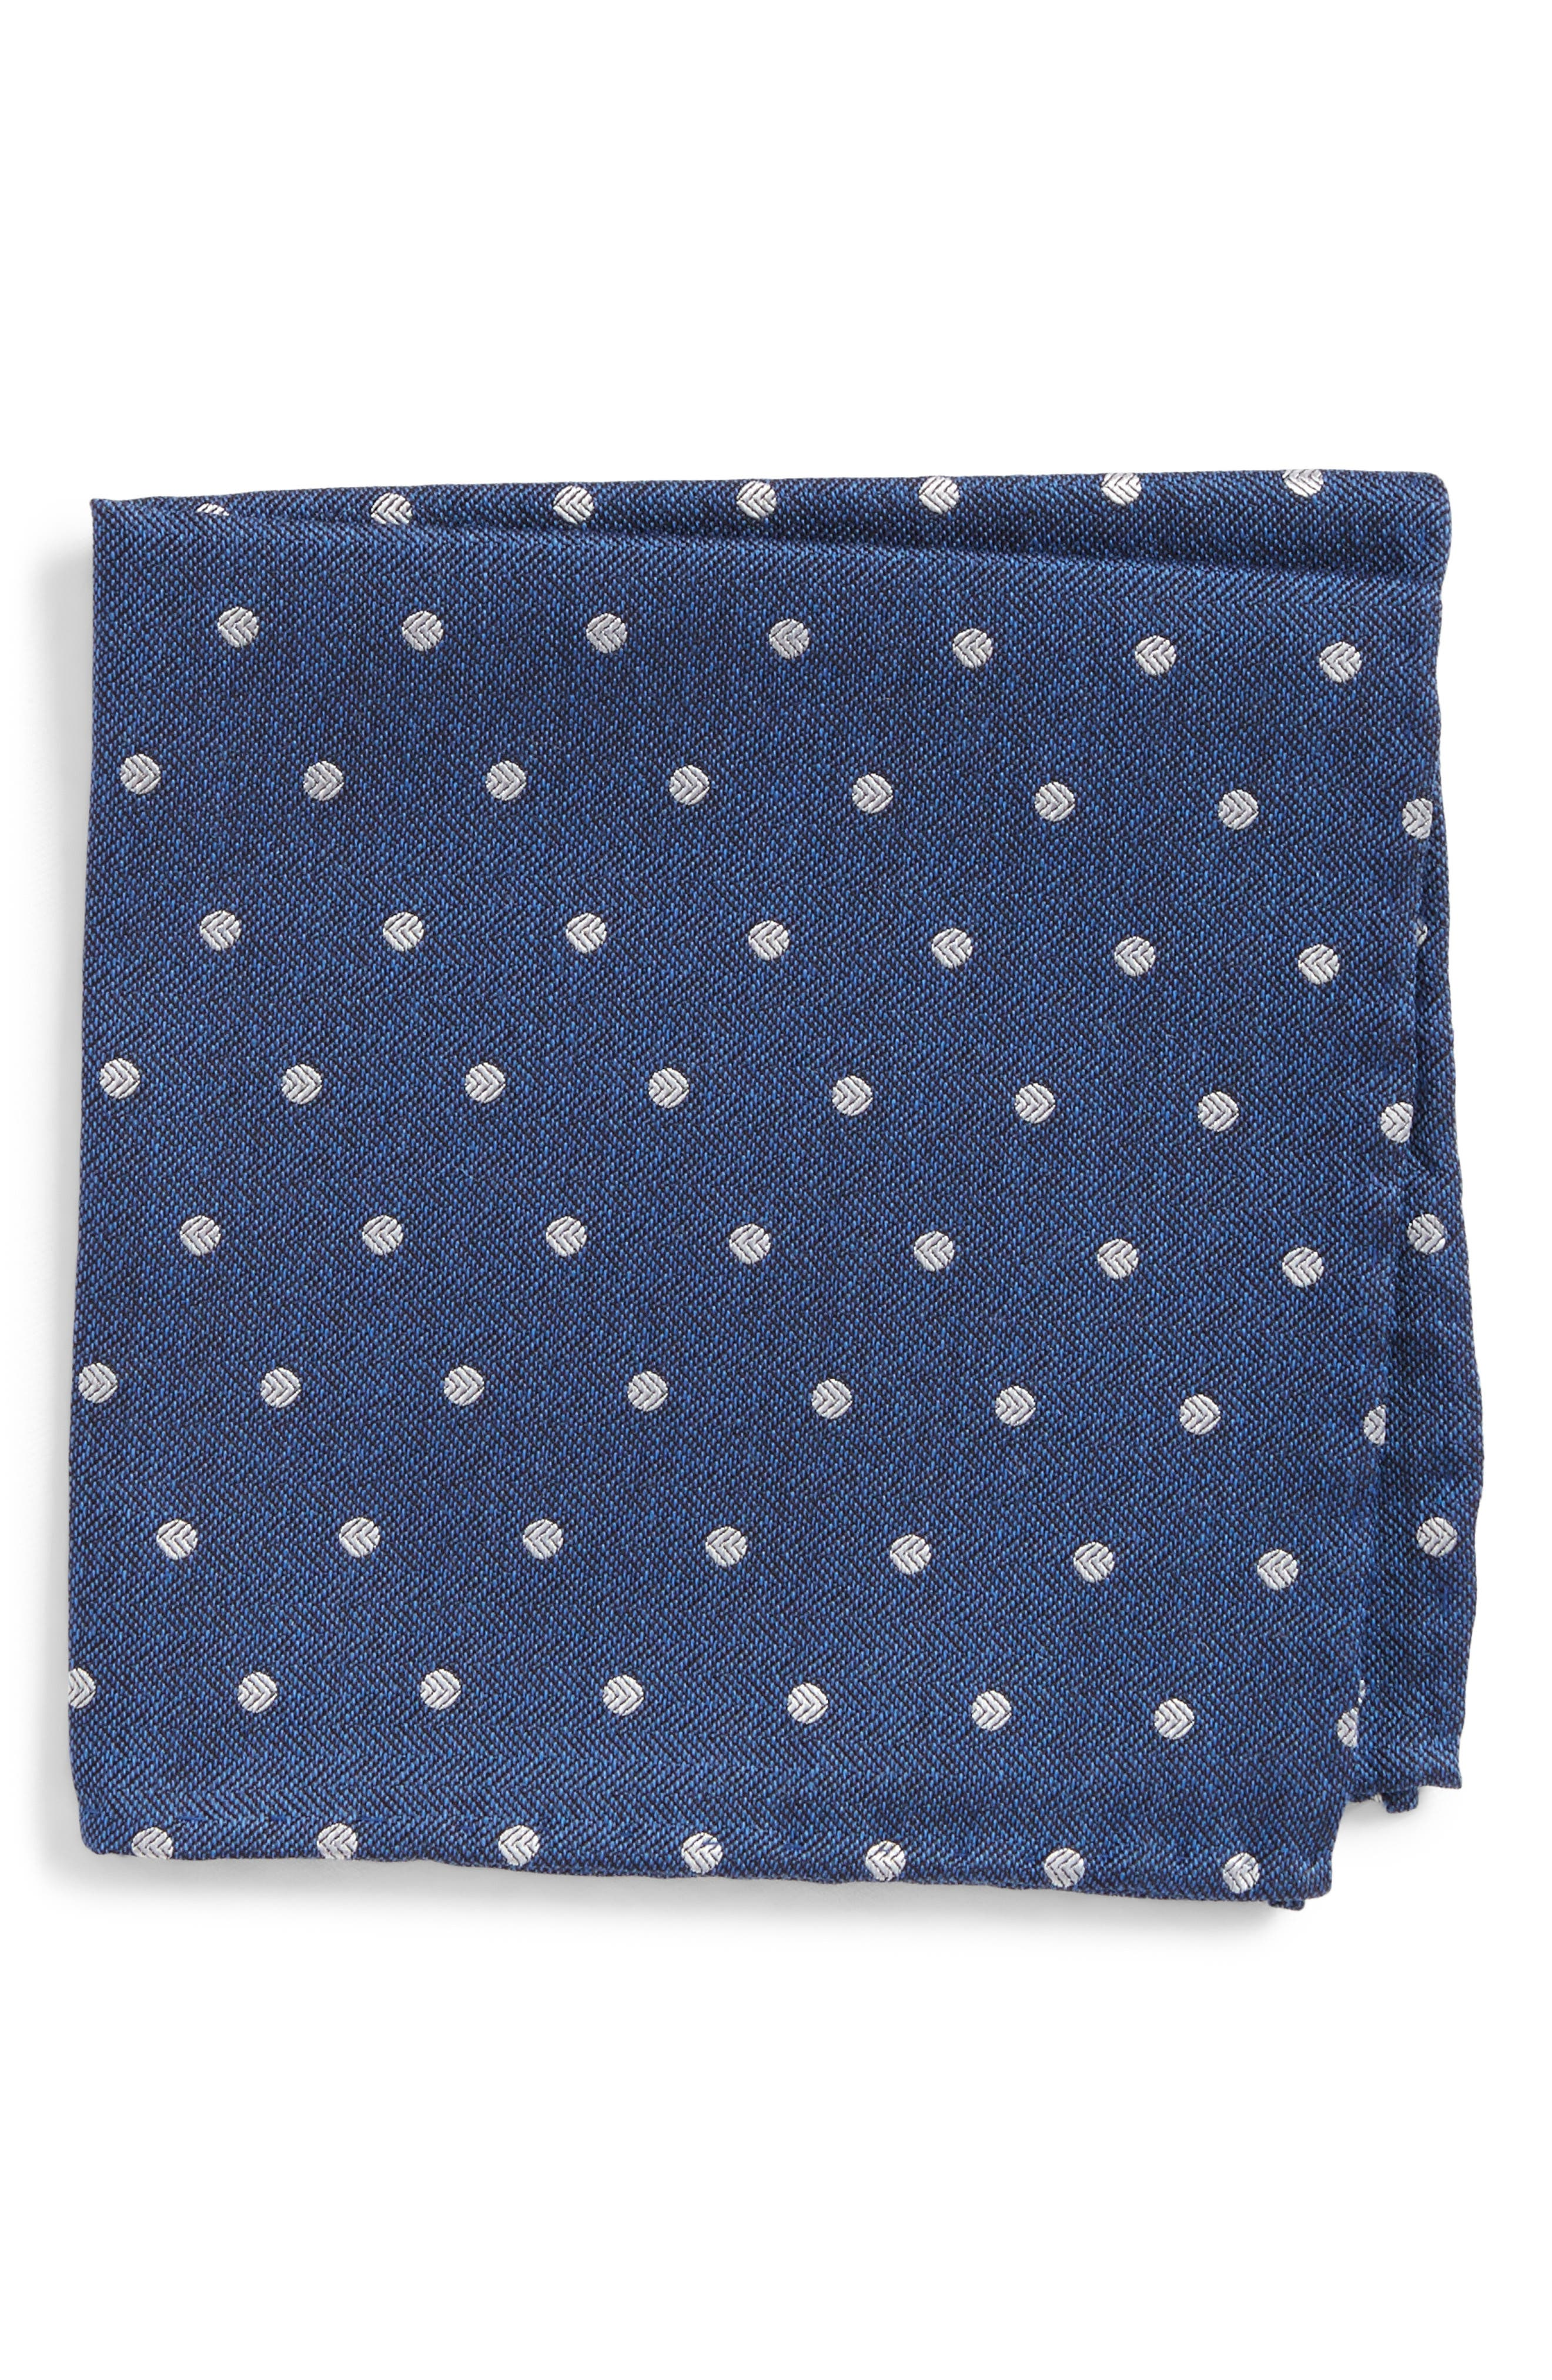 Main Image - The Tie Bar Dot Hitch Pocket Square